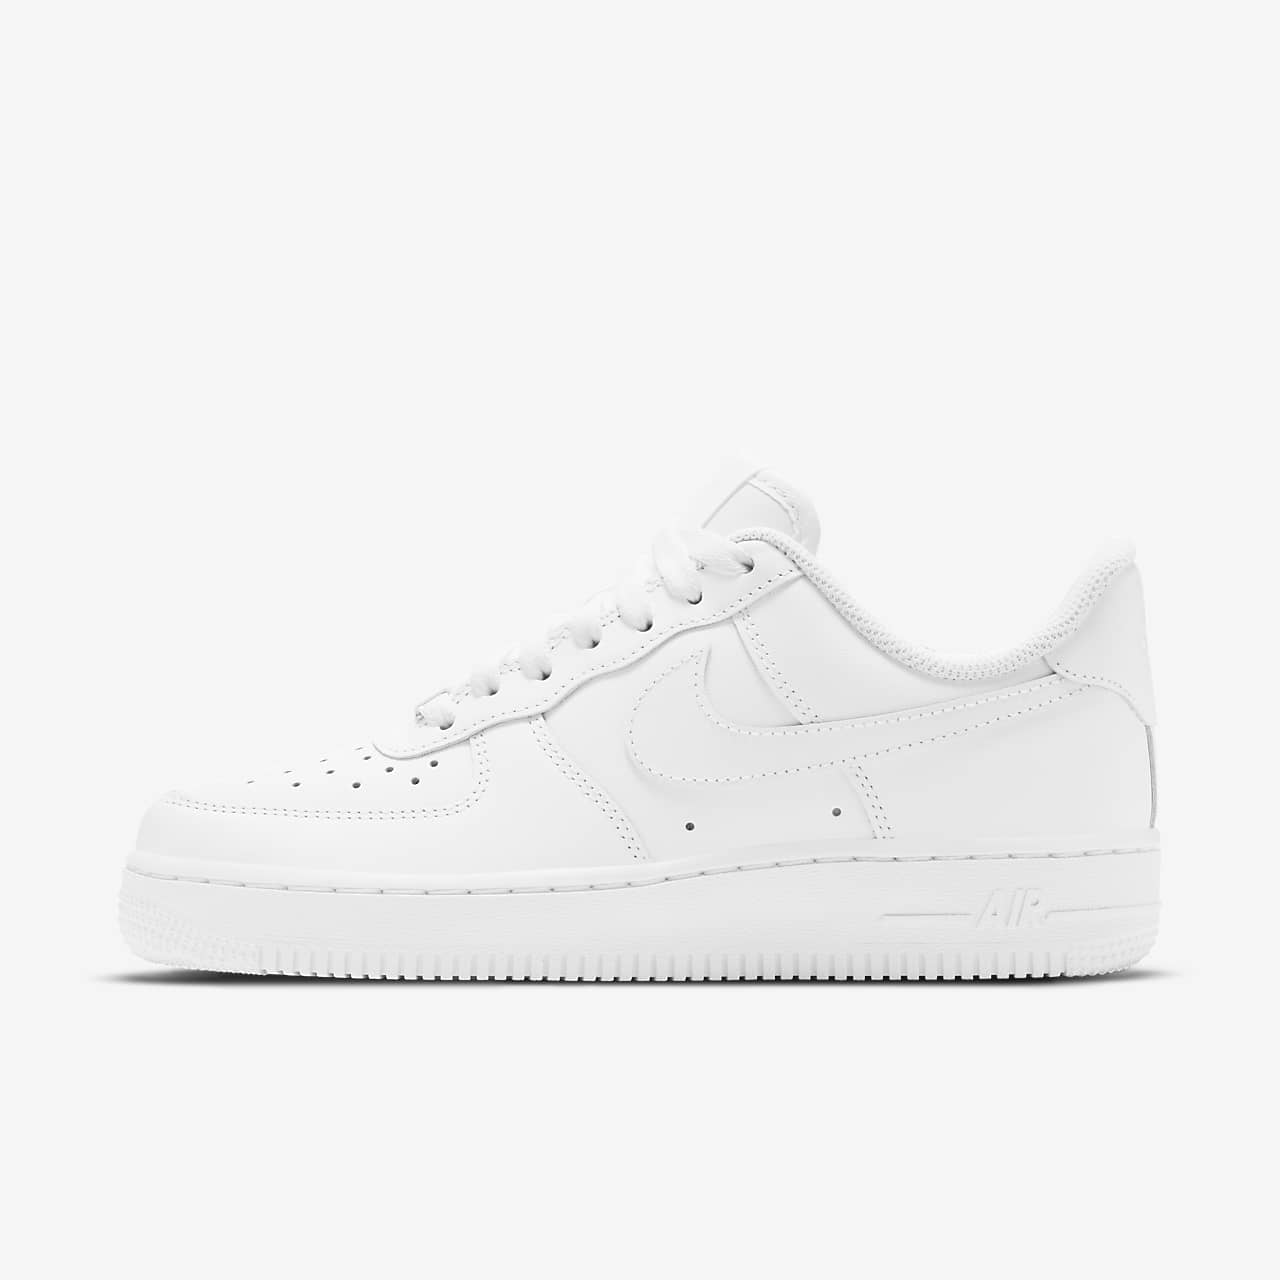 Nike Air Force 1 07 Chaussure Lo Schoenen Wit Wit K7krffIH